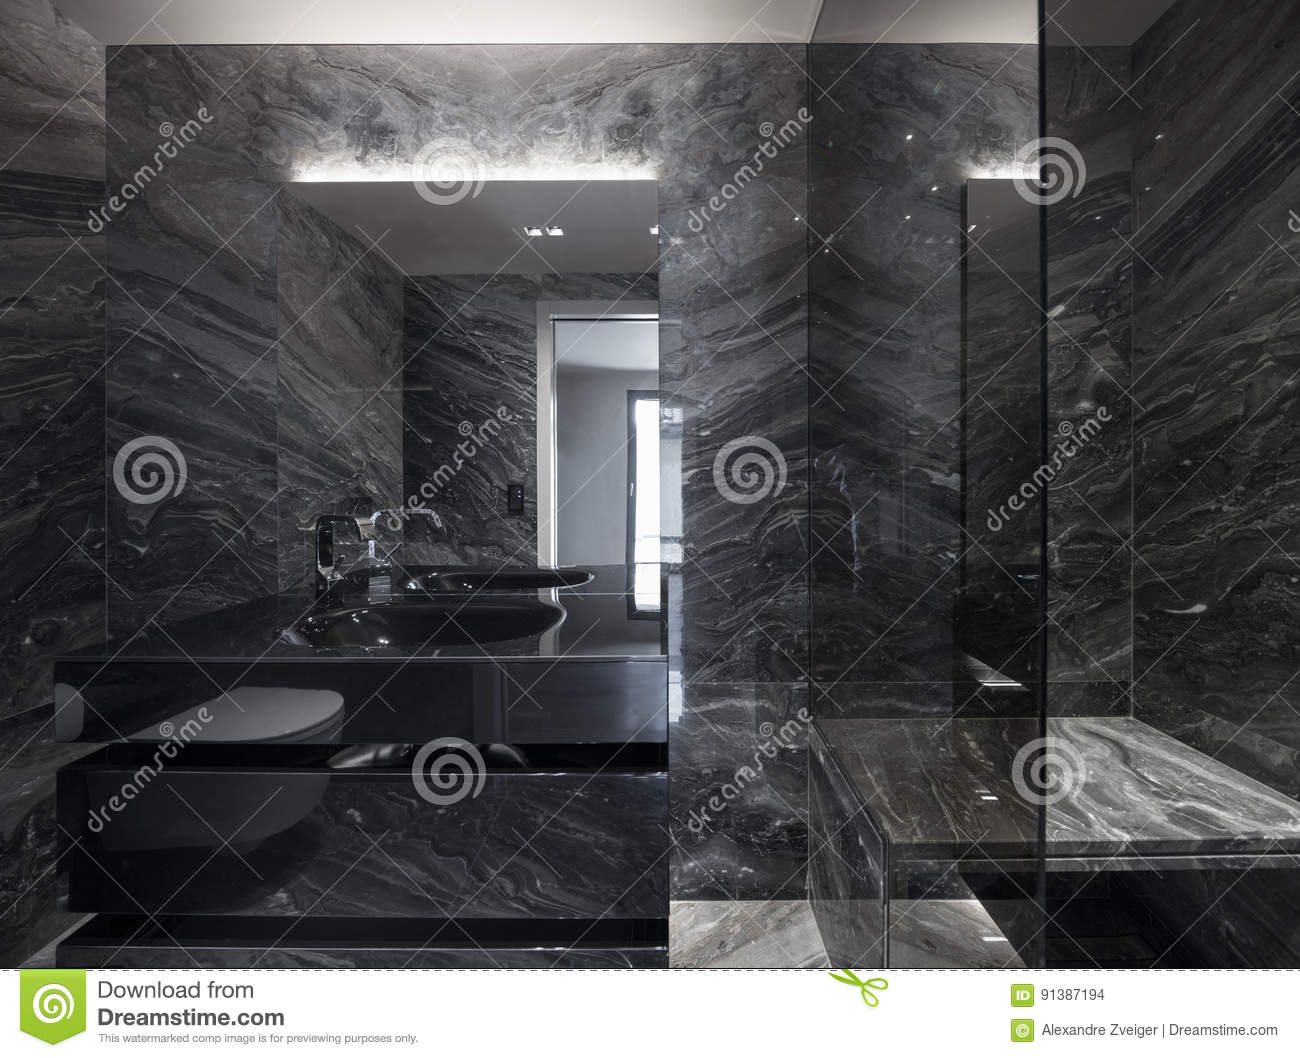 Interior Of Design Bathroom Nobody Inside Stock Photo Image Of Empty Marbkle 91387194